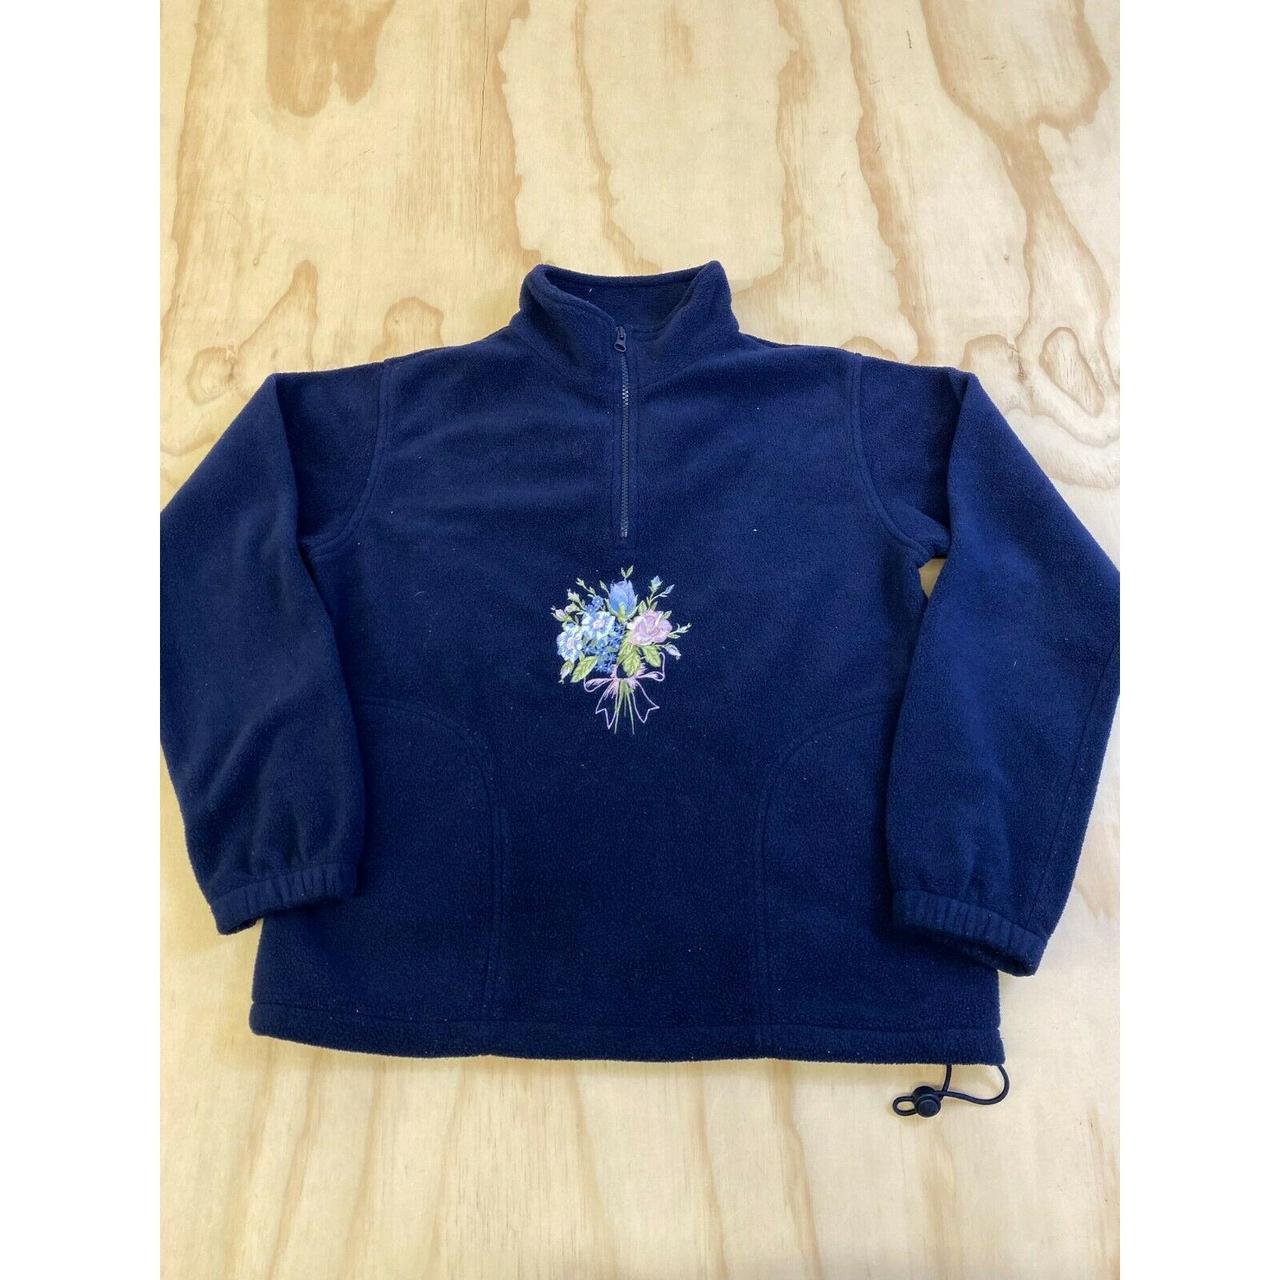 Product Image 1 - NORTHERN REFLECTIONS WOMEN SMALL EMBROIDERED